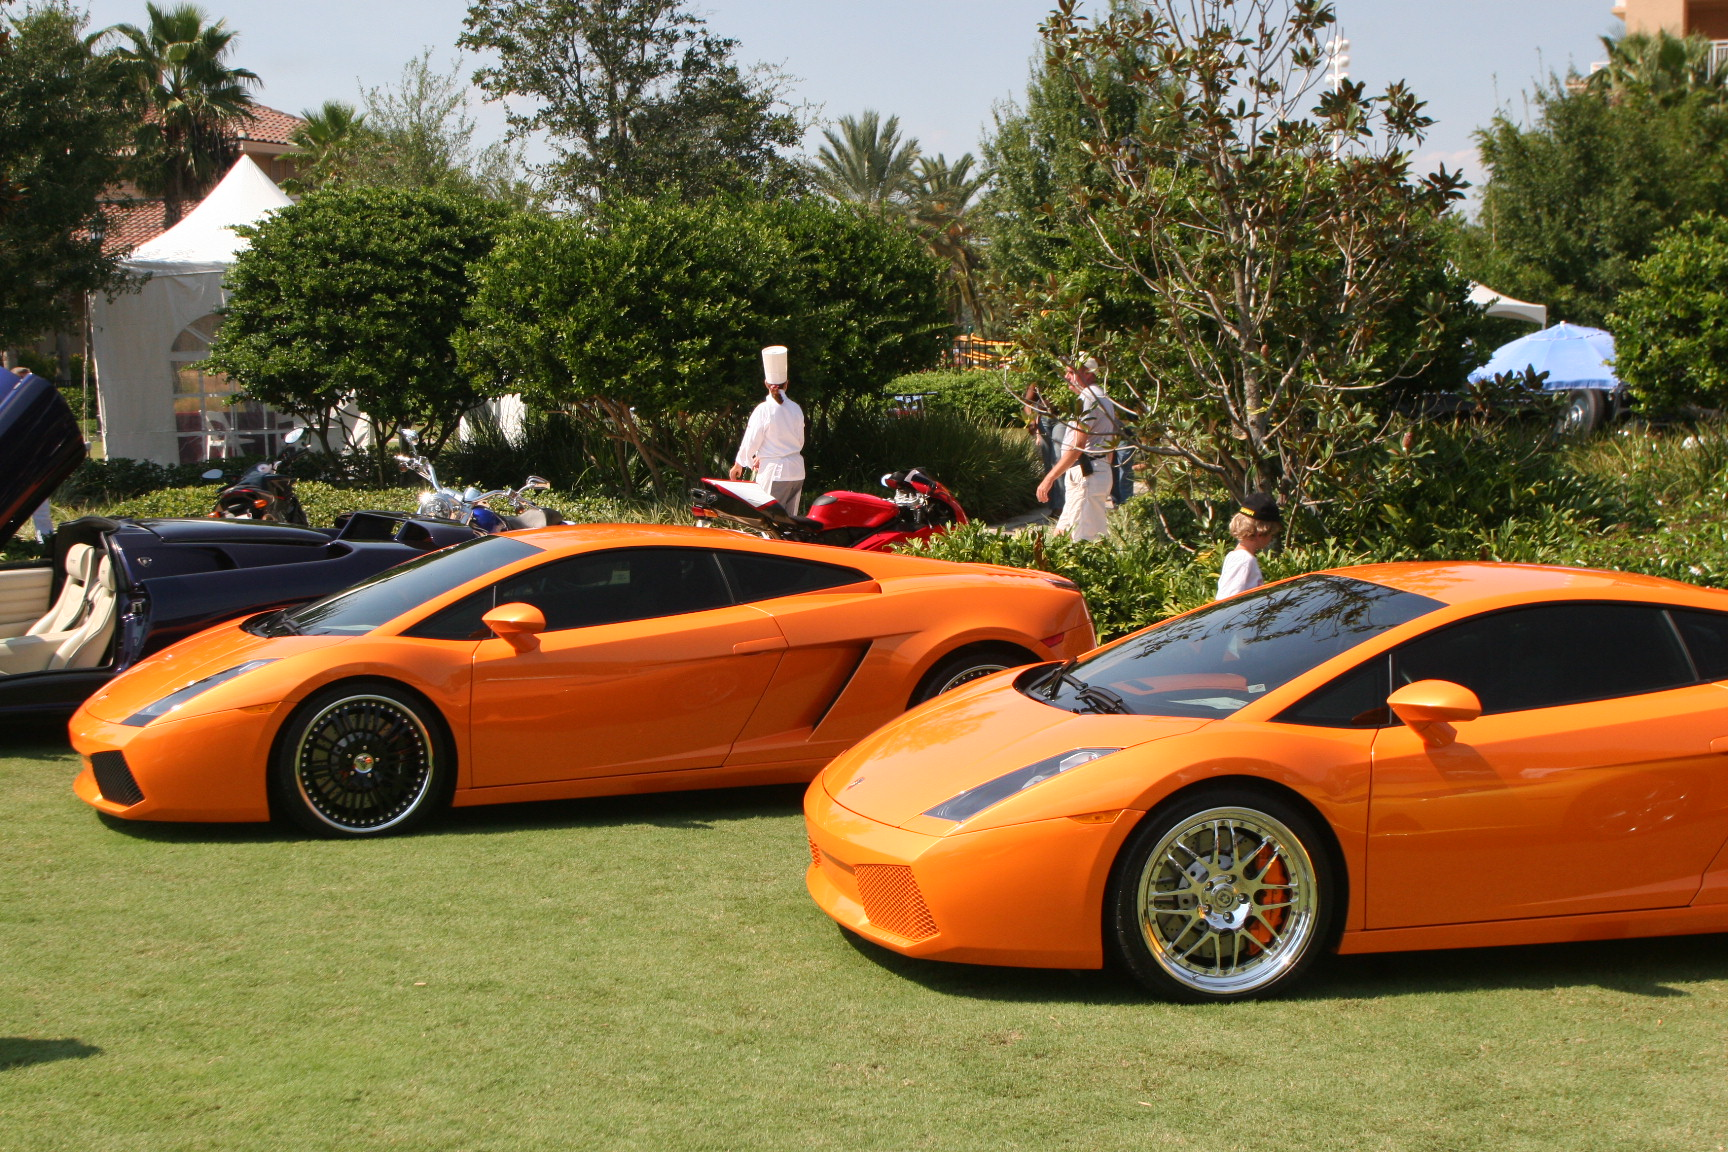 Fine Wine Culinary Masterpieces And Exotic Cars Mix As